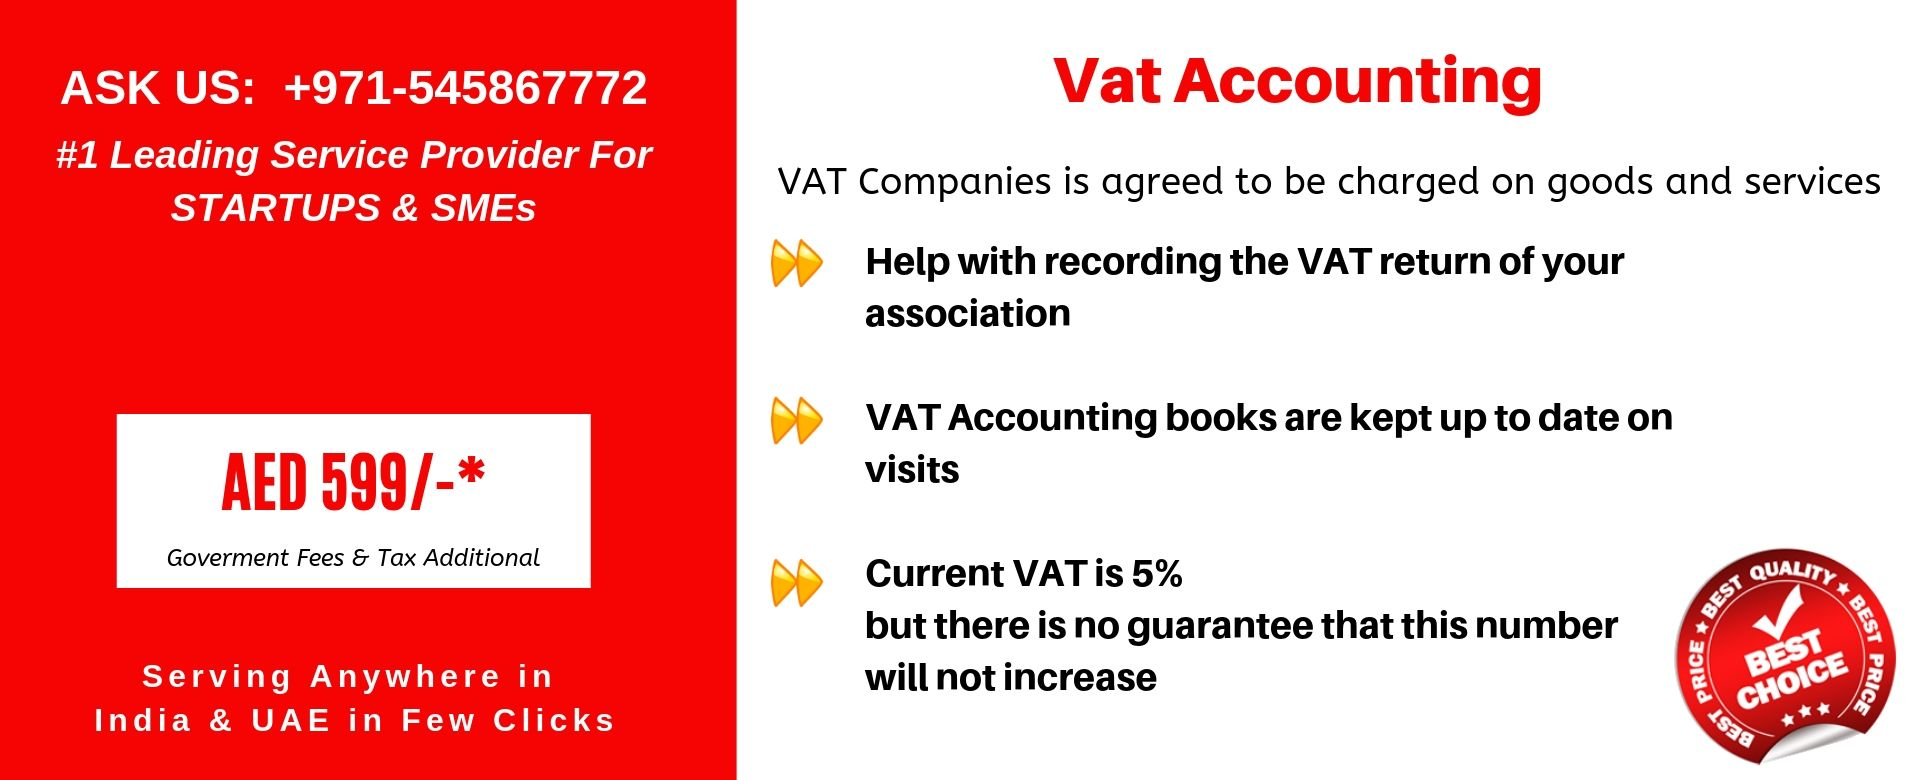 vat accounting in uae